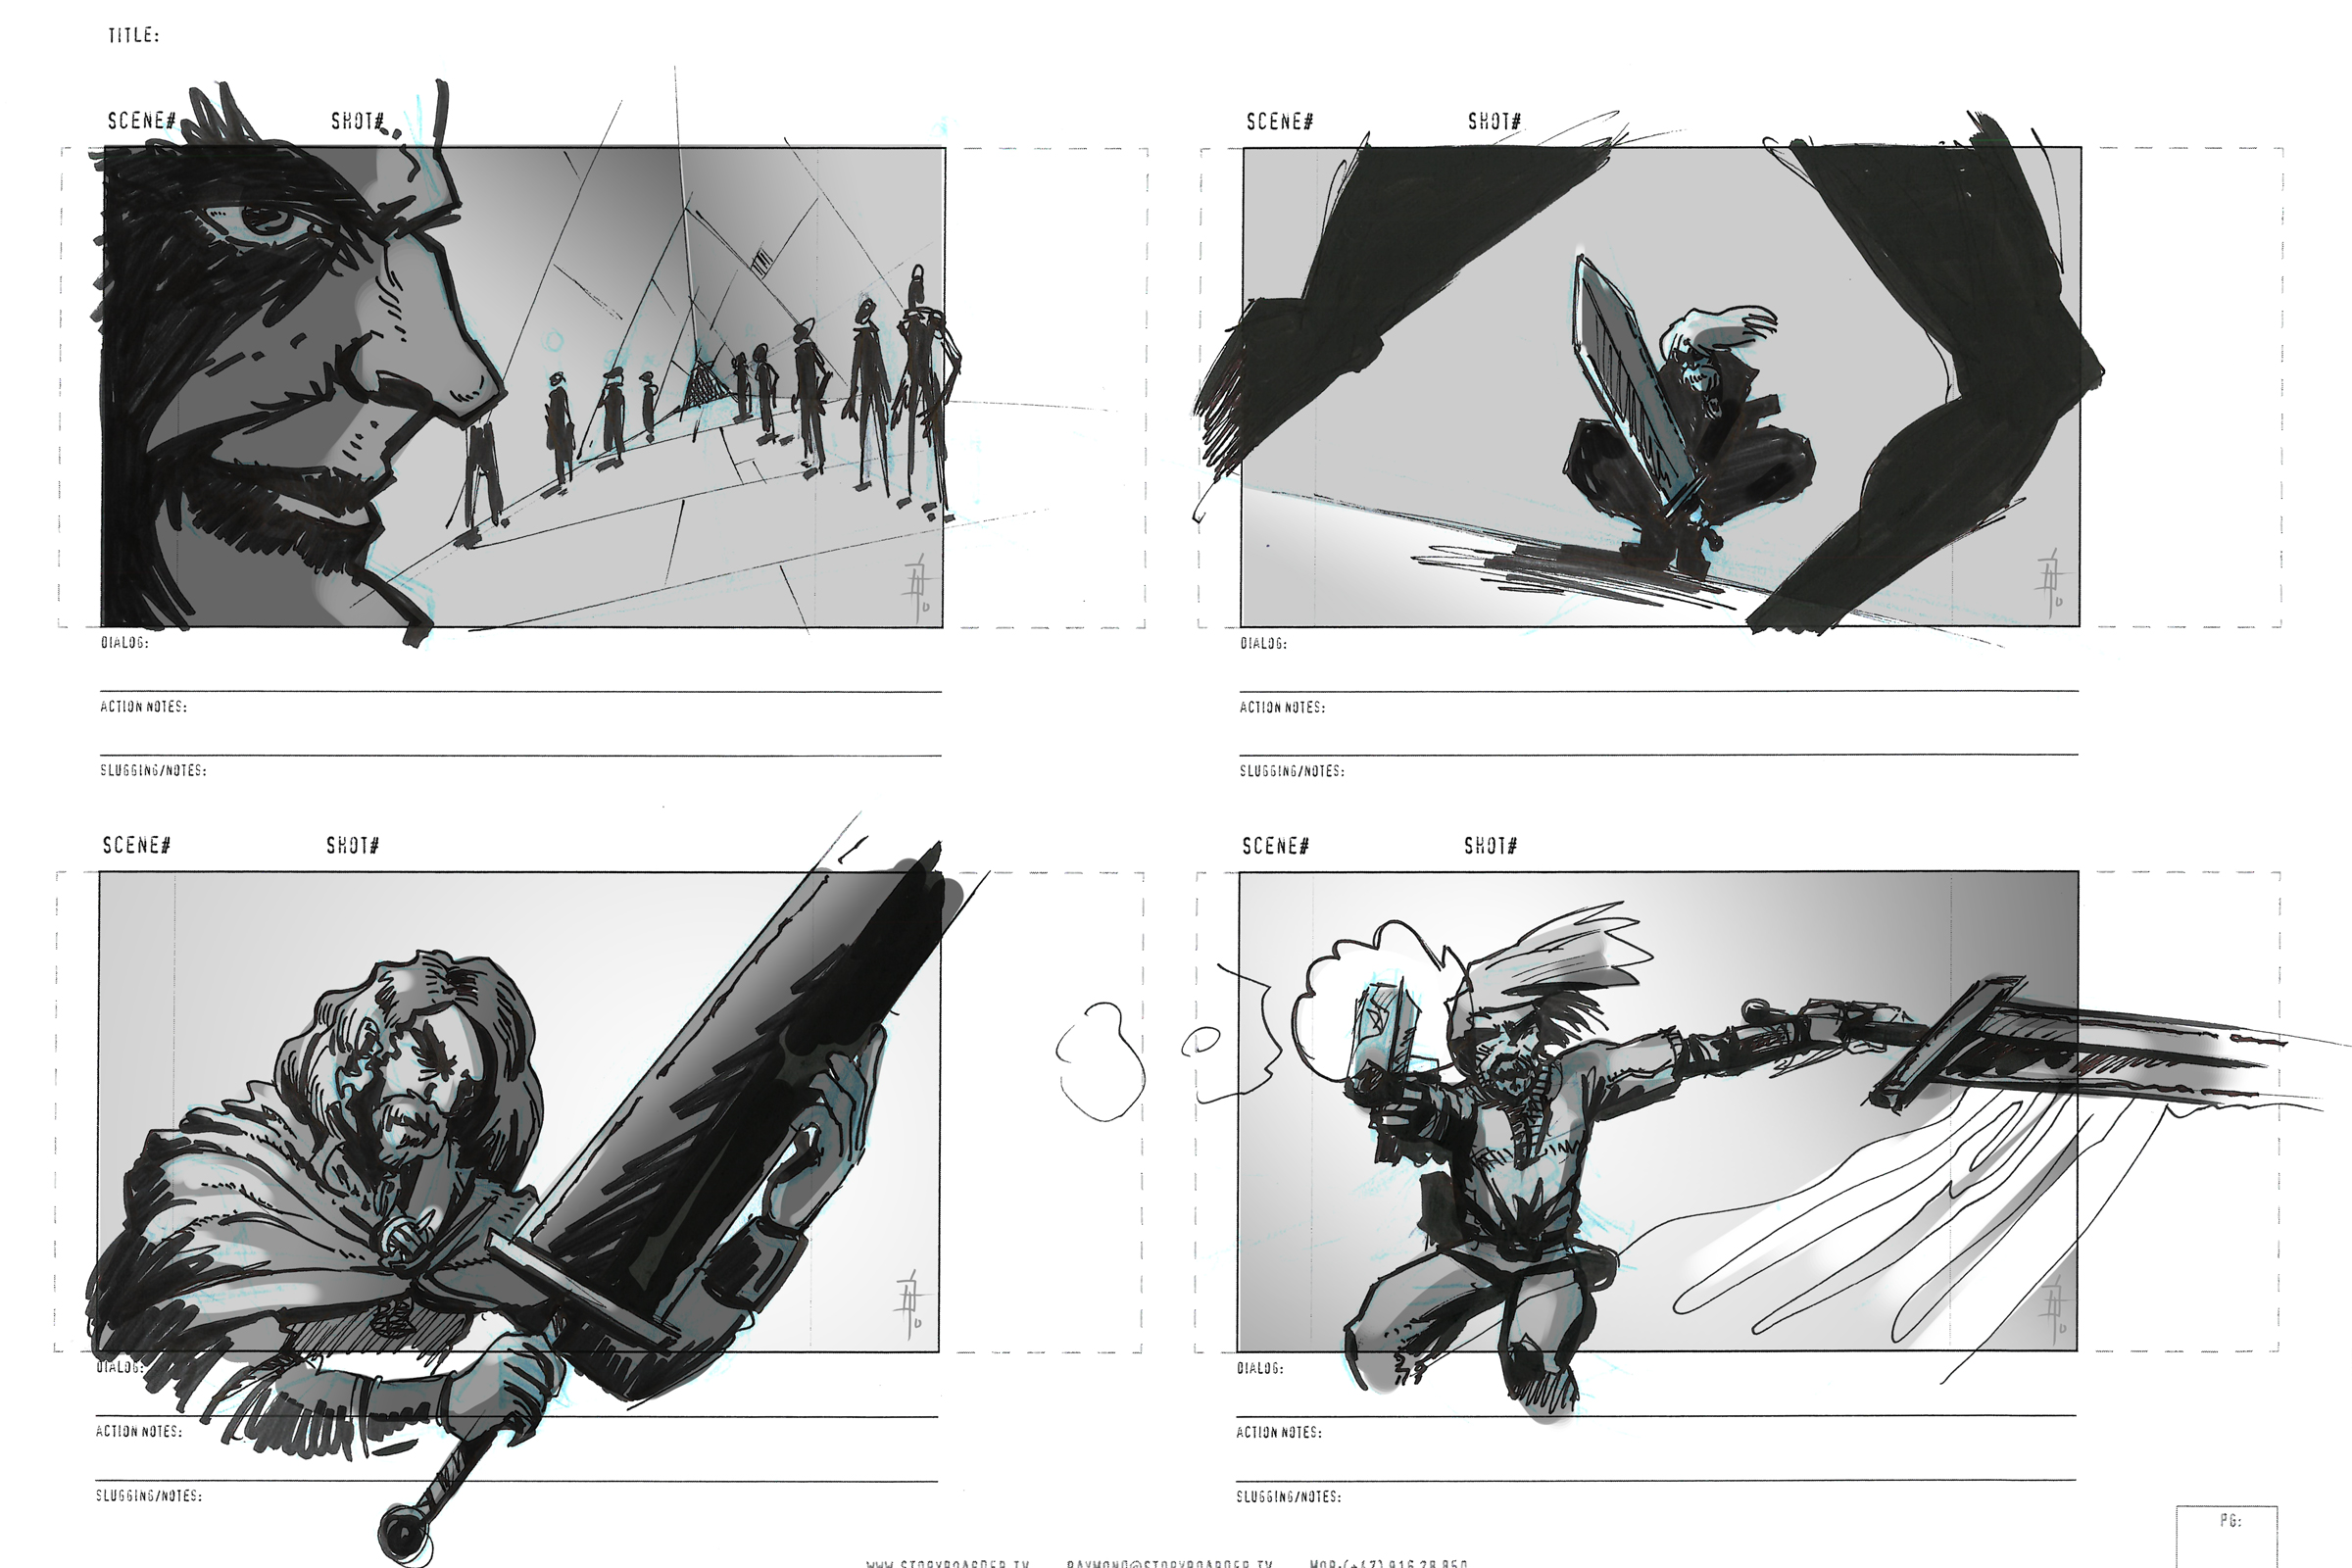 Vikings storyboard sketches in the year 3000